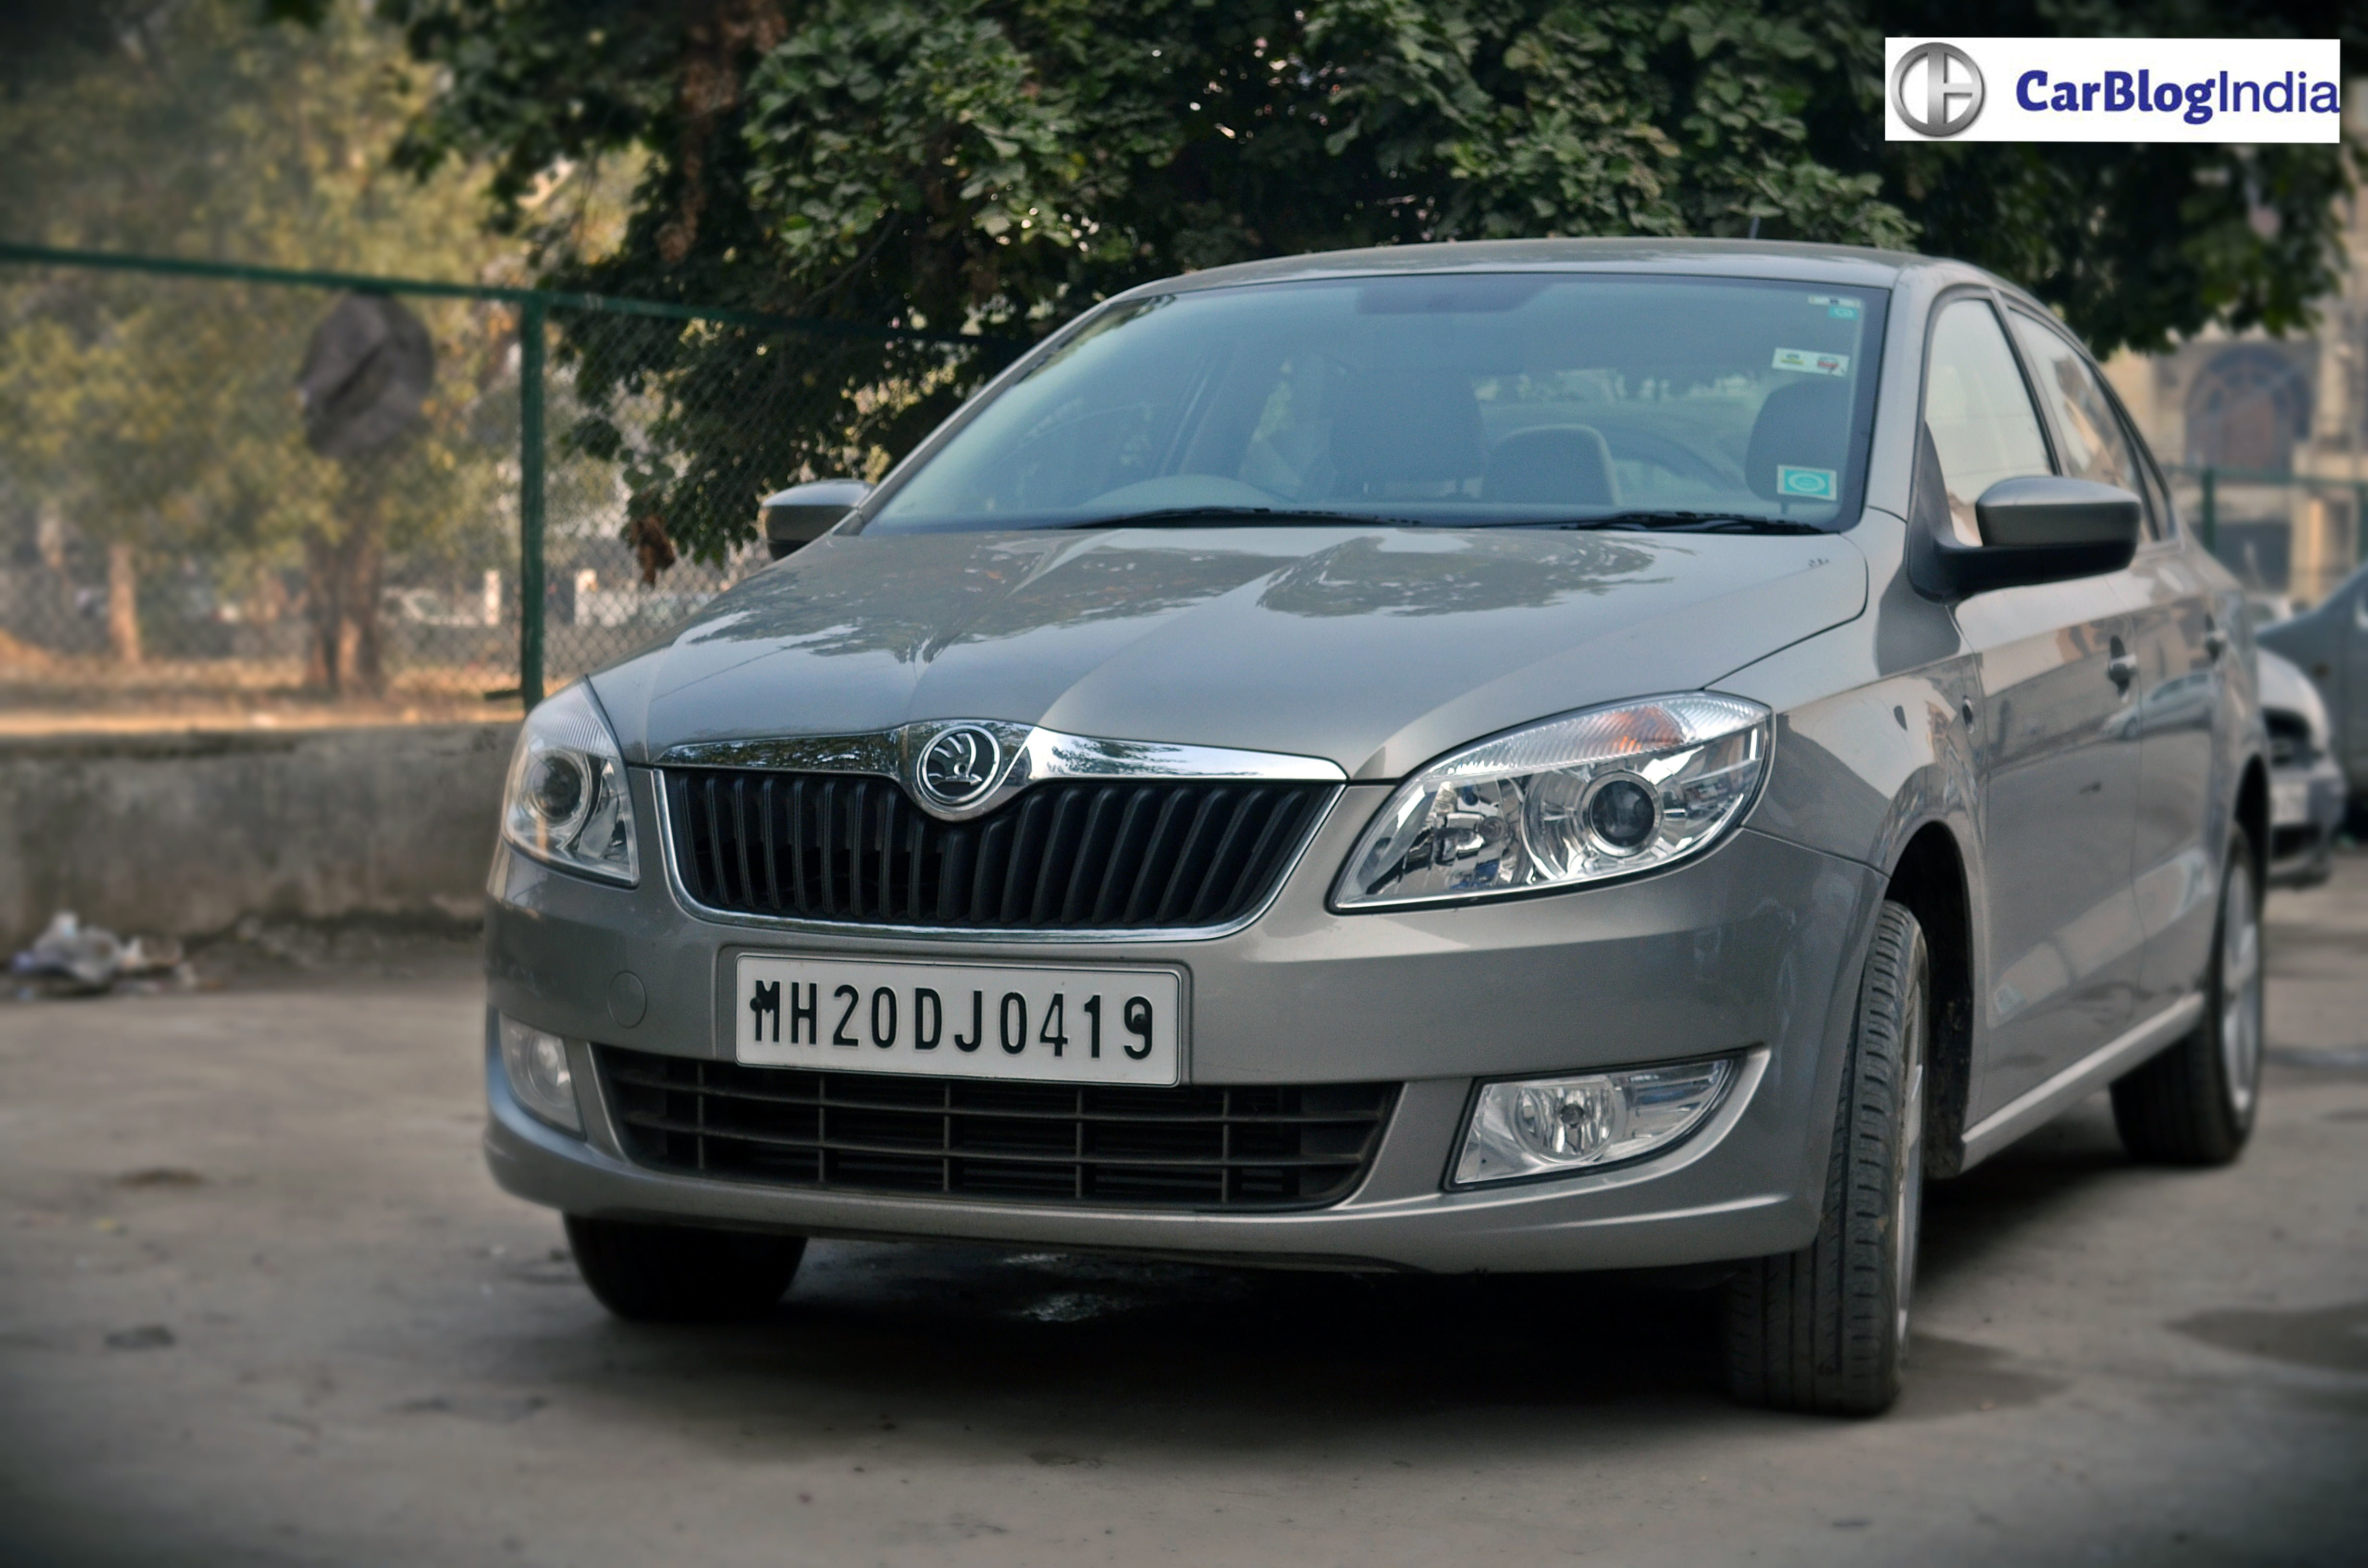 skoda rapid 1 5 tdi dsg review test drive video. Black Bedroom Furniture Sets. Home Design Ideas